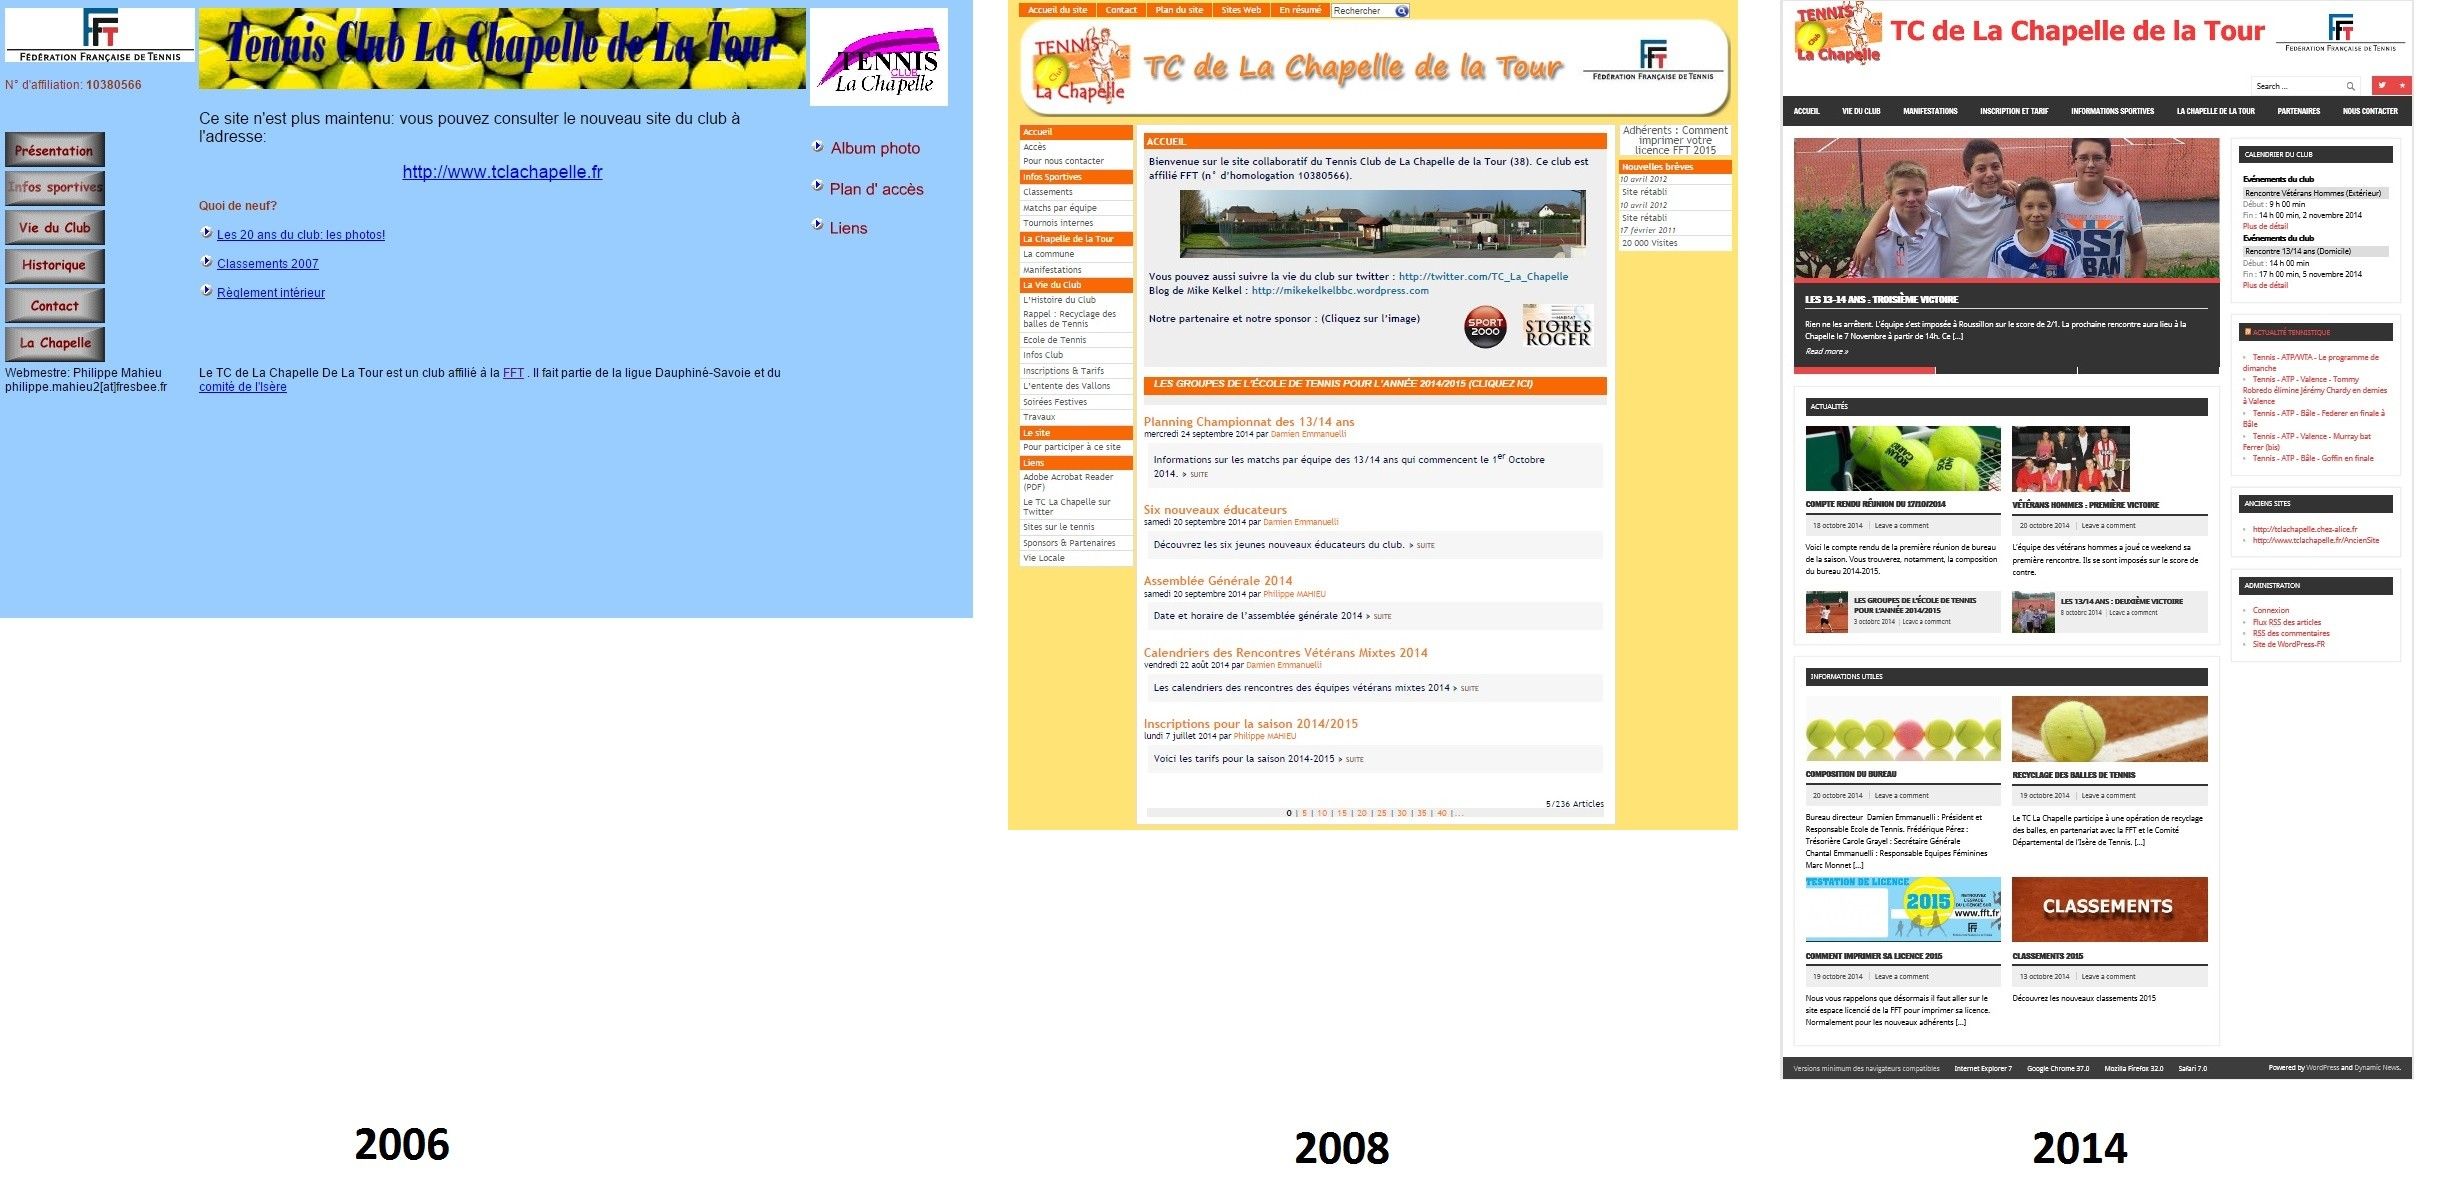 Evolution des sites internet du tennis club la Chapelle de la Tour